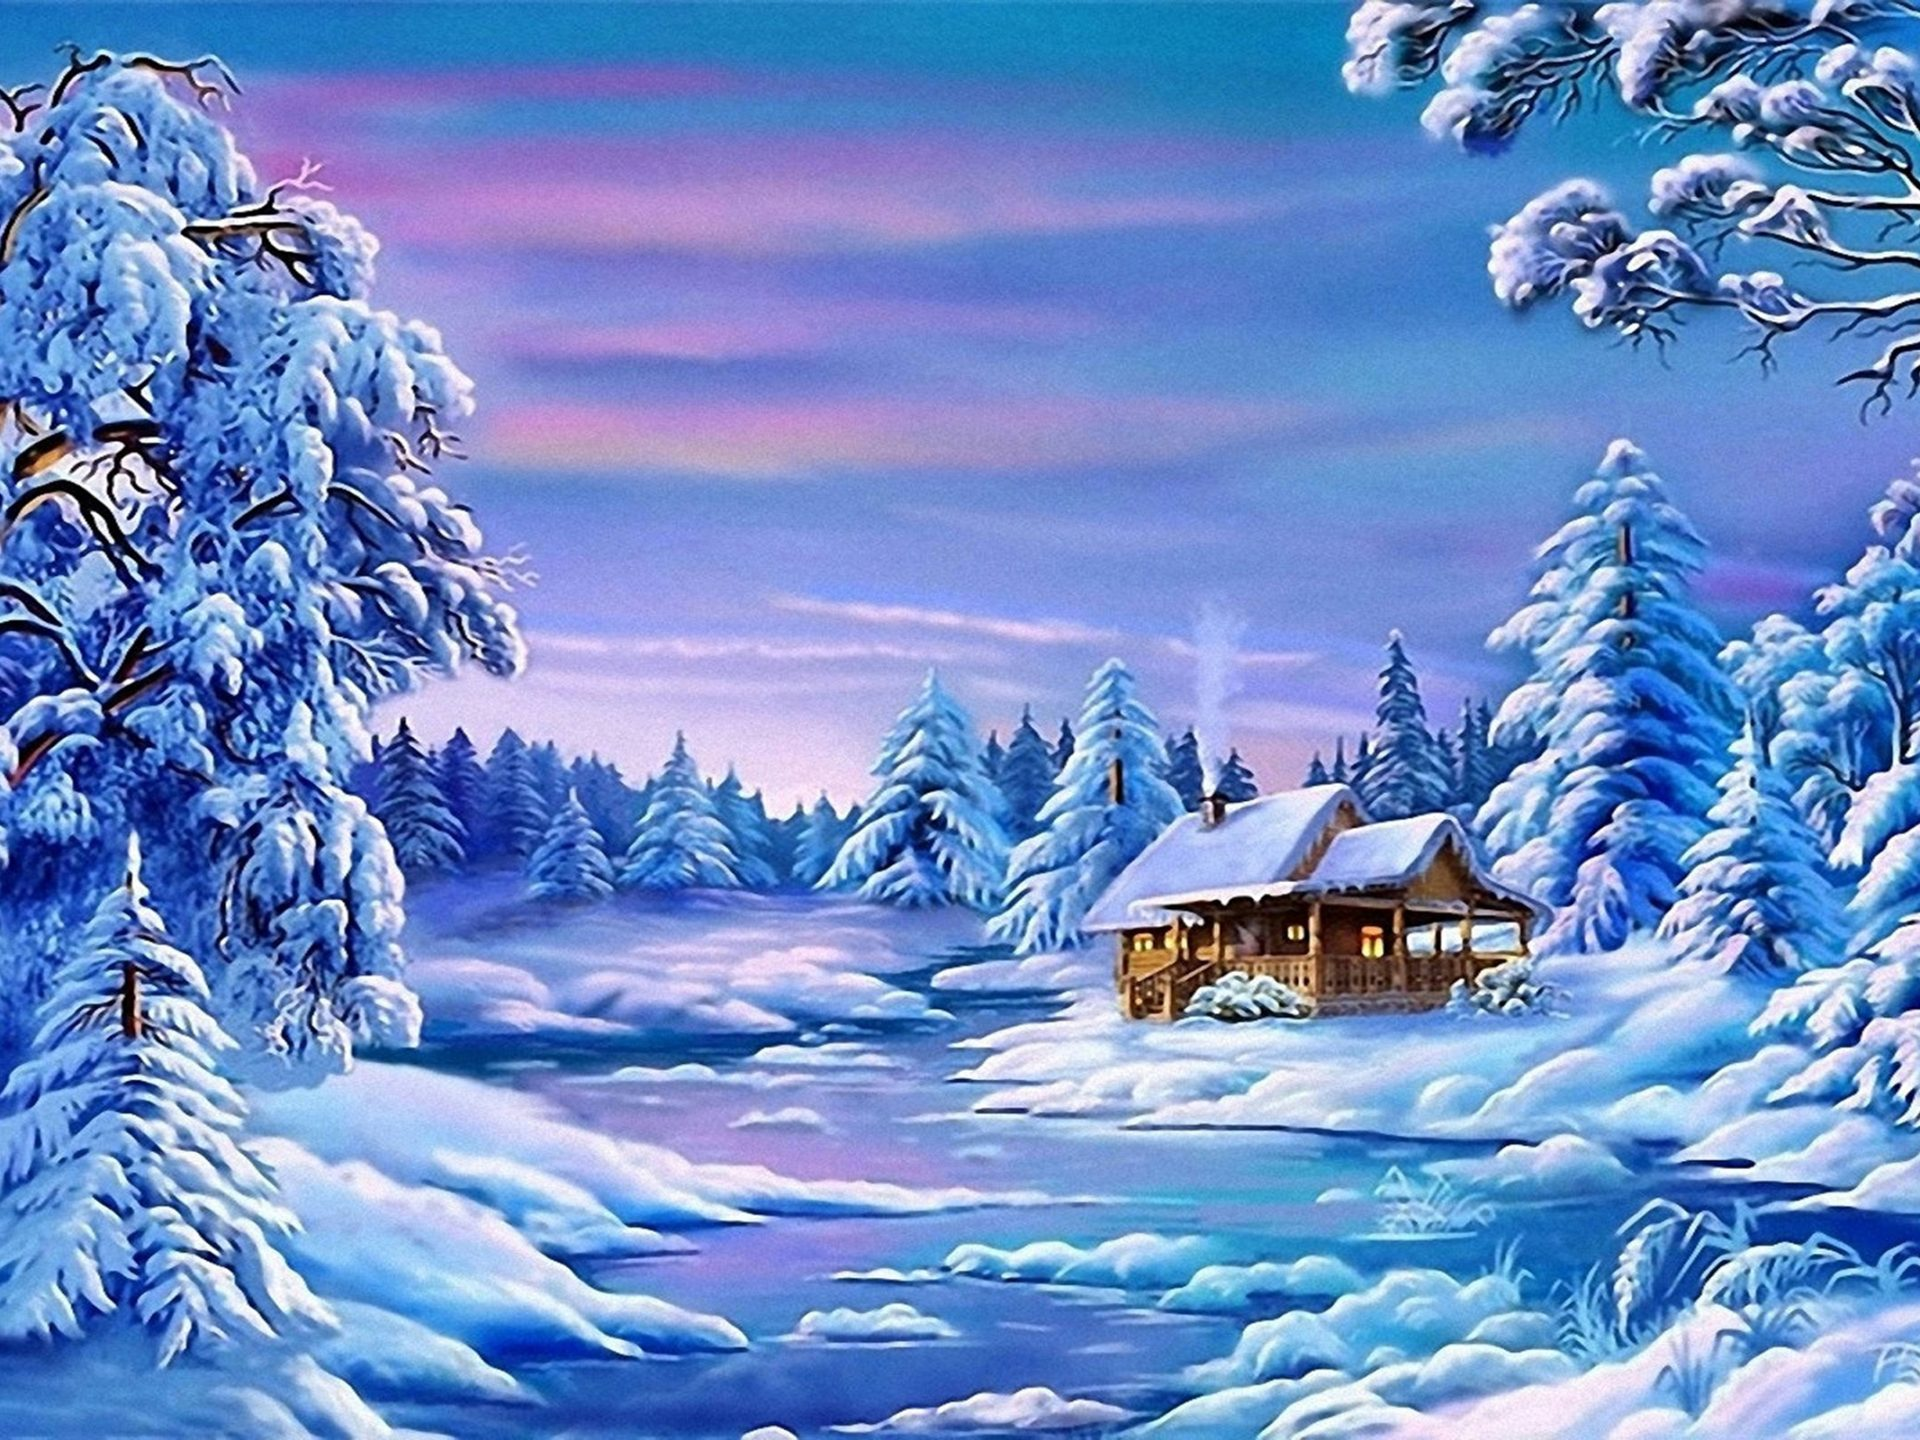 Image Of Beautiful Girl Wallpaper Landscape Winter Frozen River House Trees With Snow